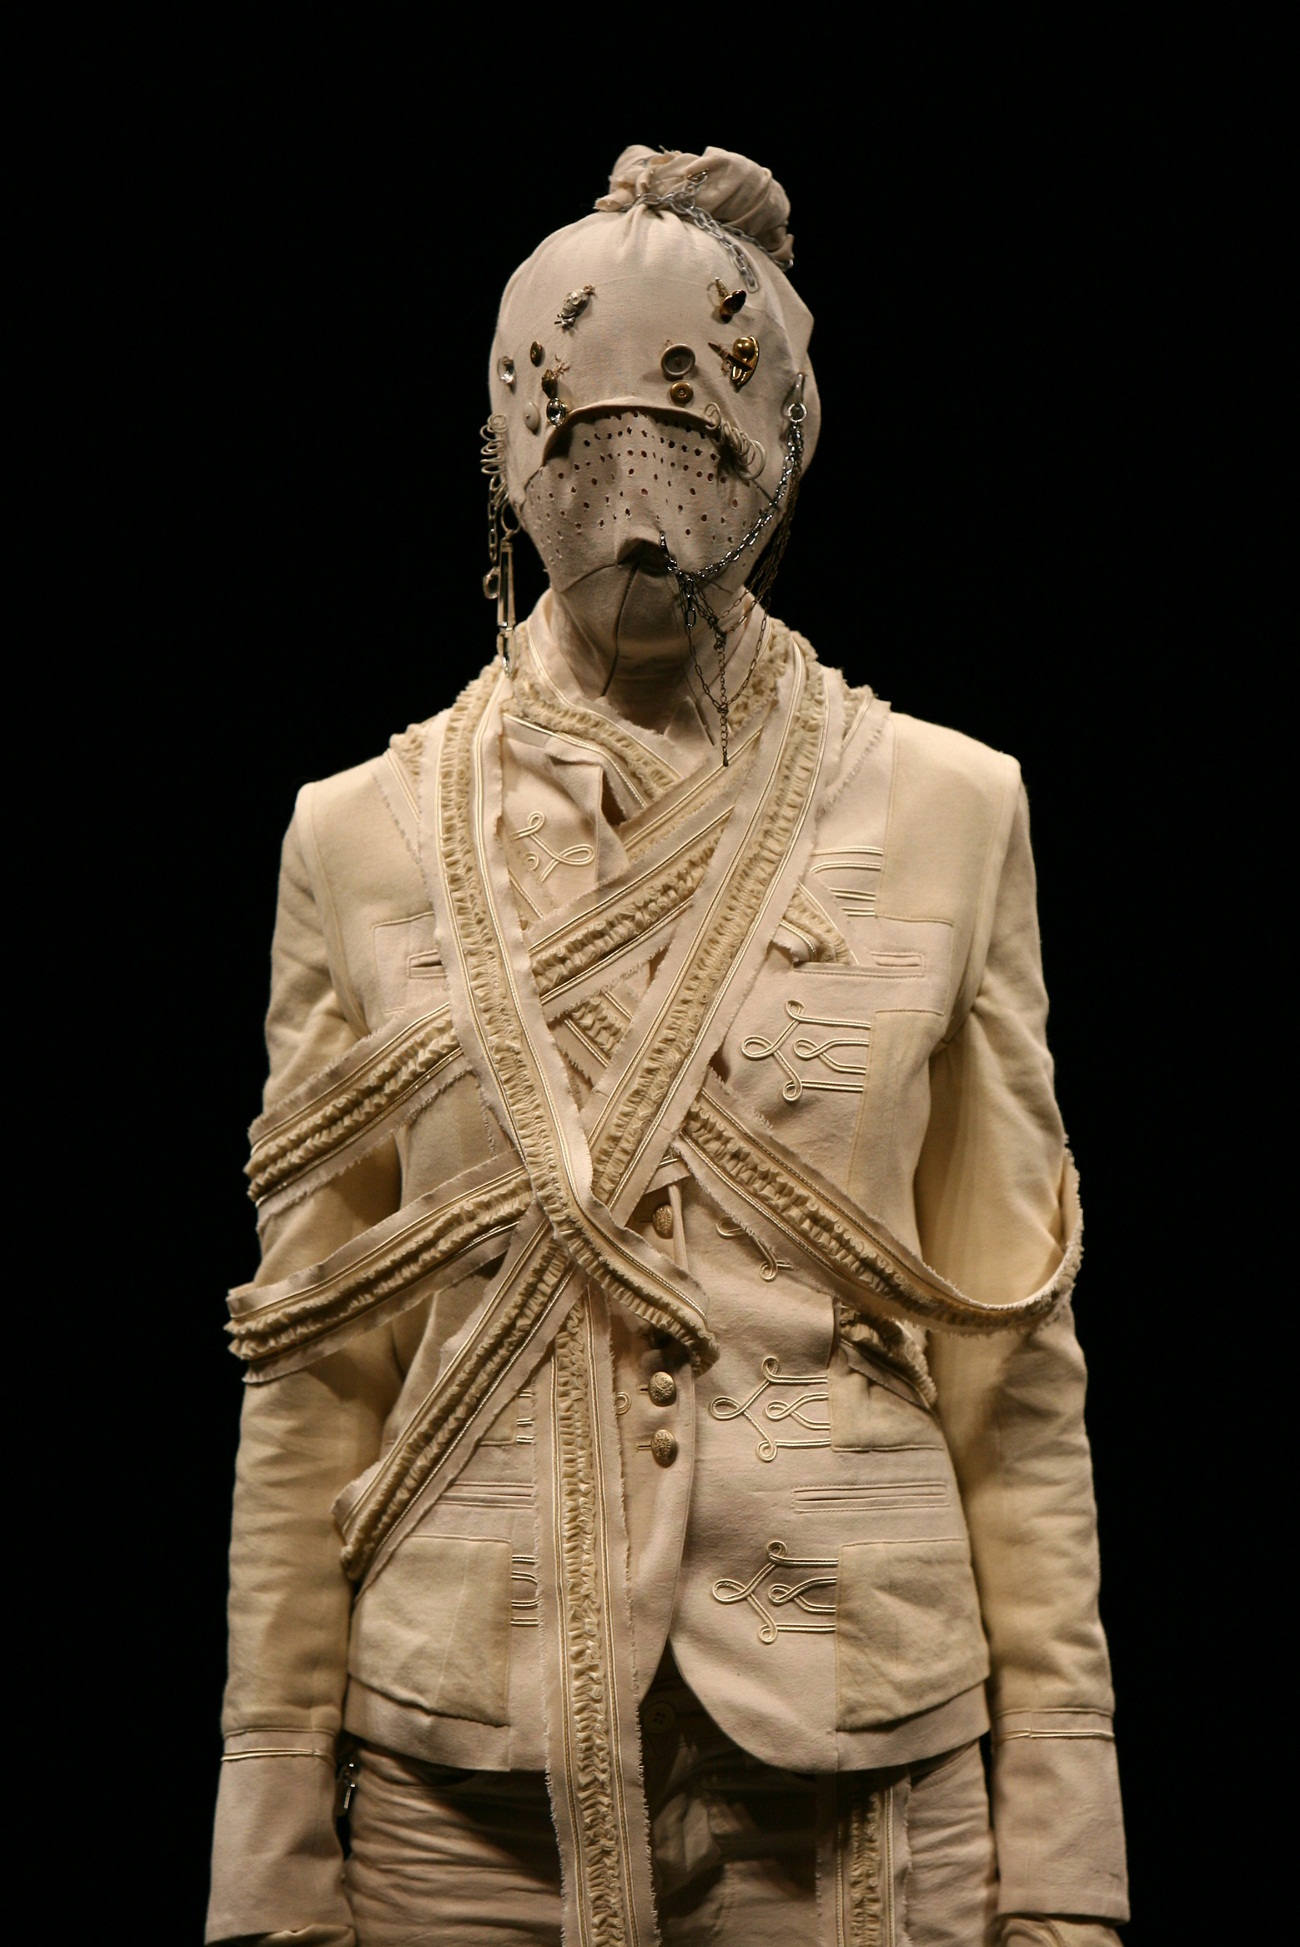 UNDERCOVER    Info:   Jun Takahashi for UNDERCOVER (JP) founded in 1994 in Tokio  www.undercoverism.com